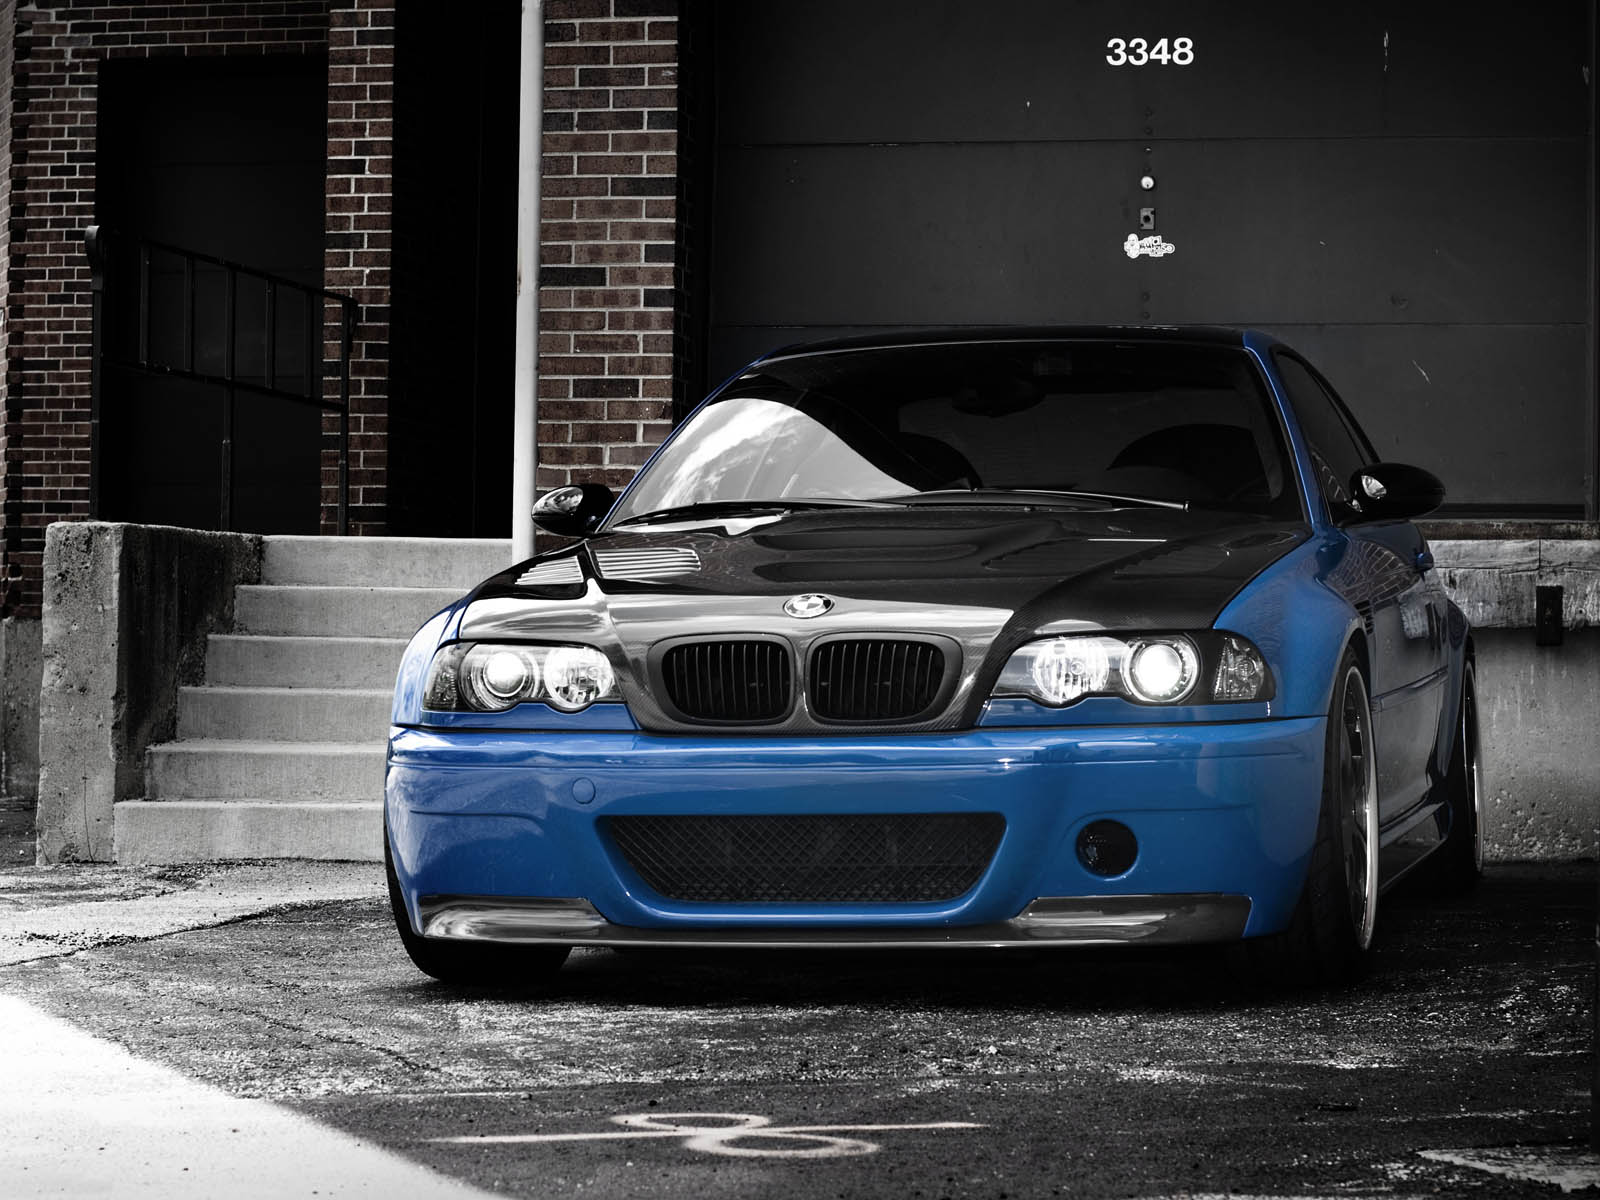 BMW M3 E46 CSL Car Wallpapers | Hd Wallpapers